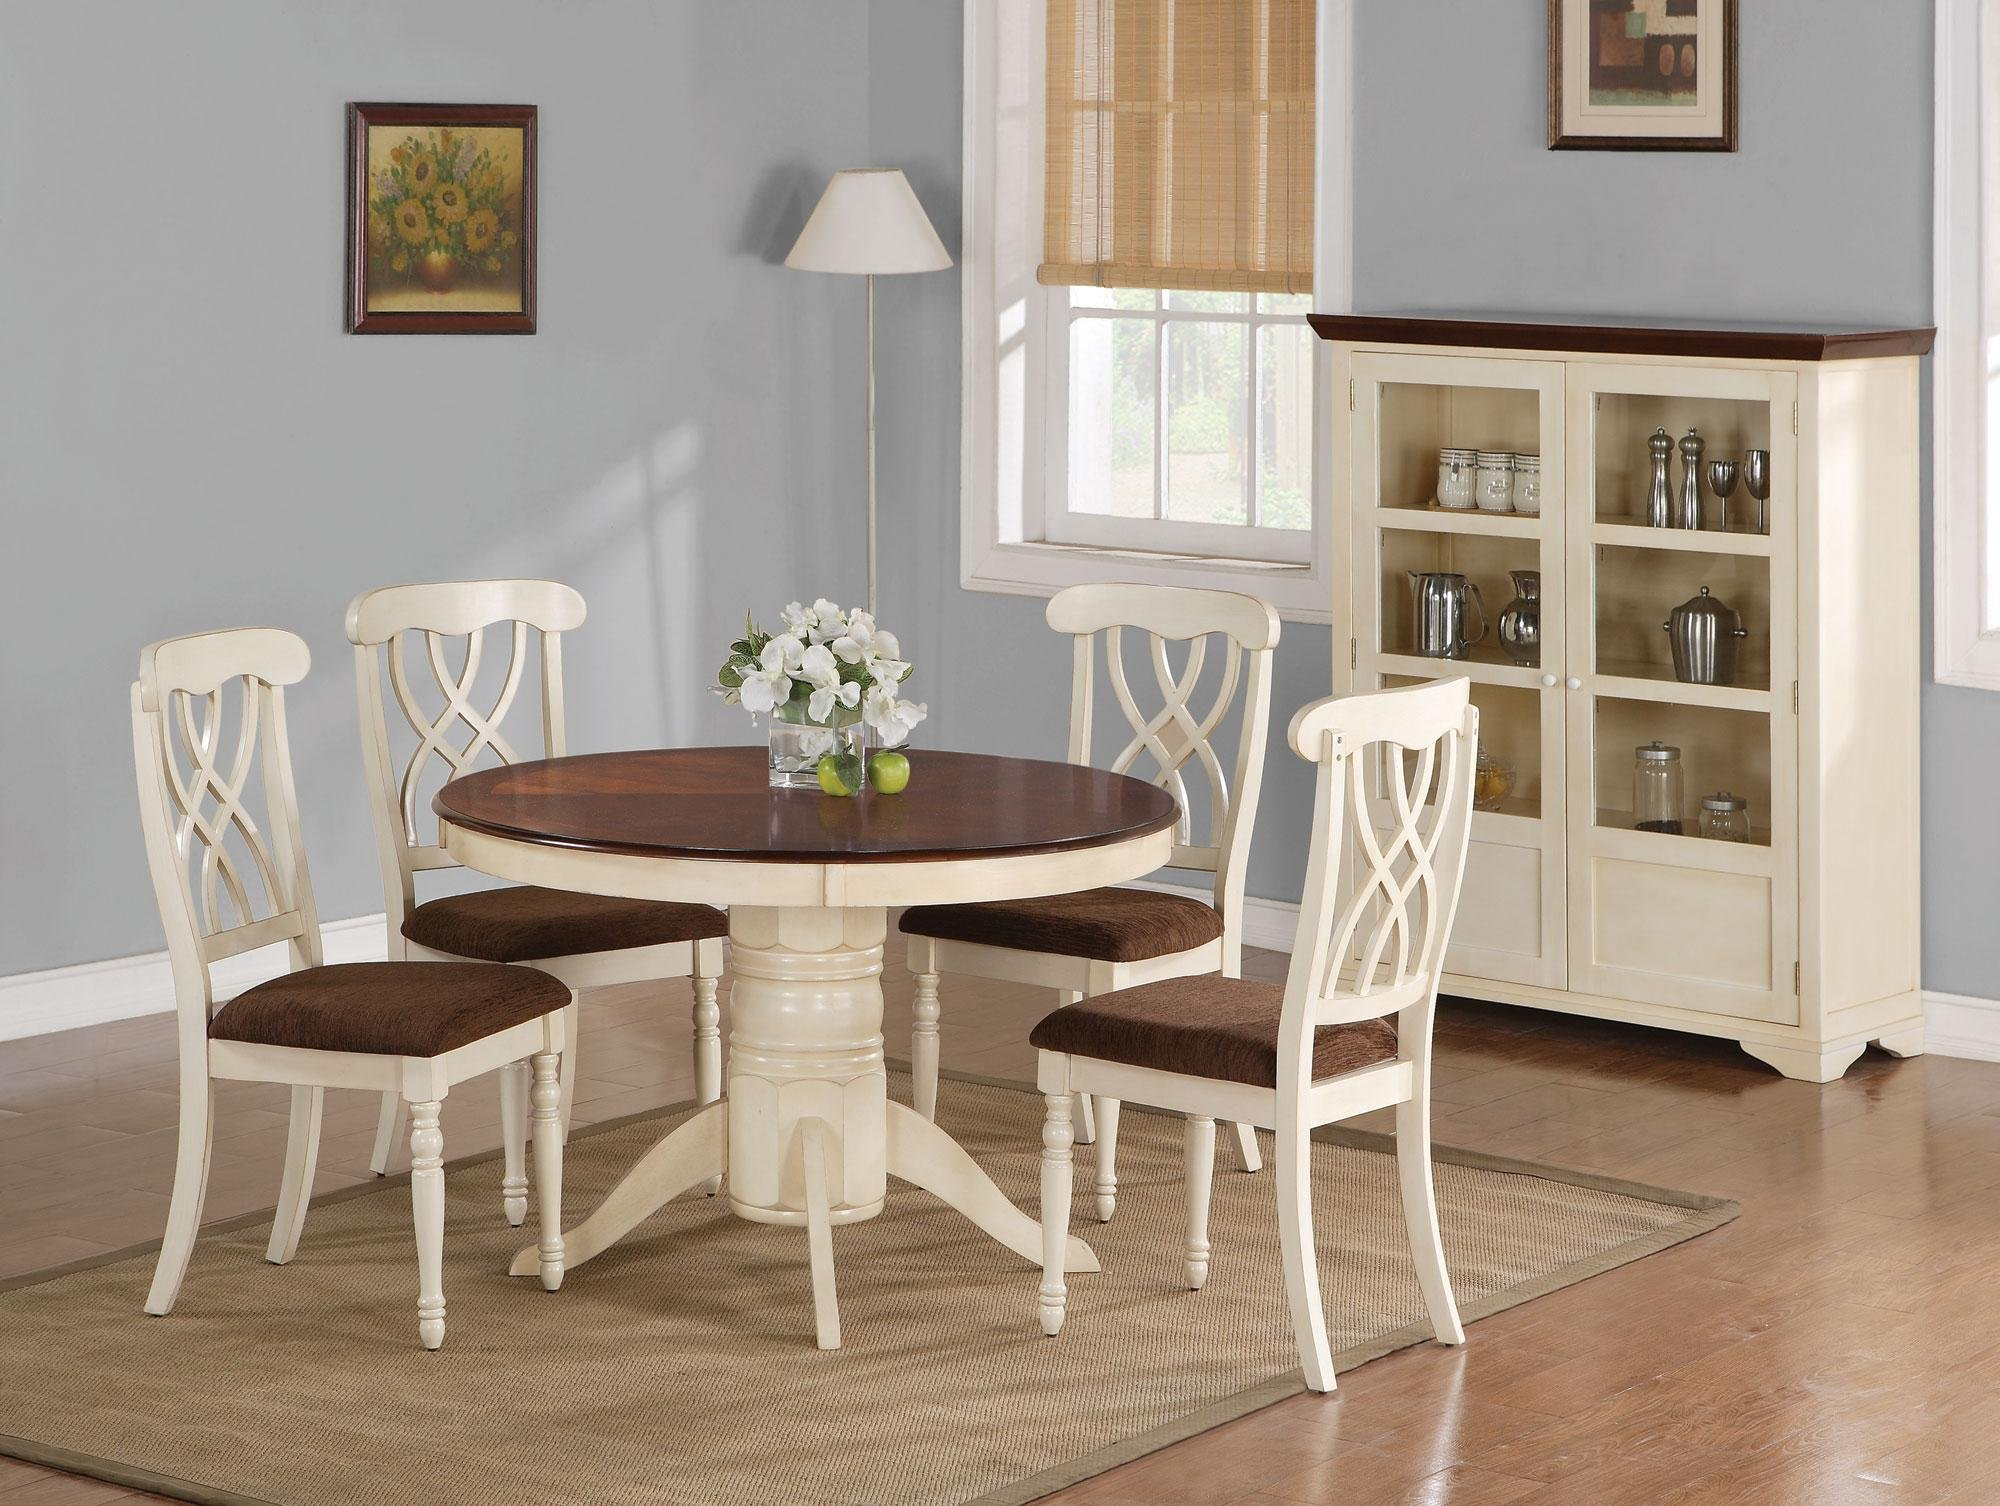 beautiful white round kitchen table and chairs homesfeed. Black Bedroom Furniture Sets. Home Design Ideas